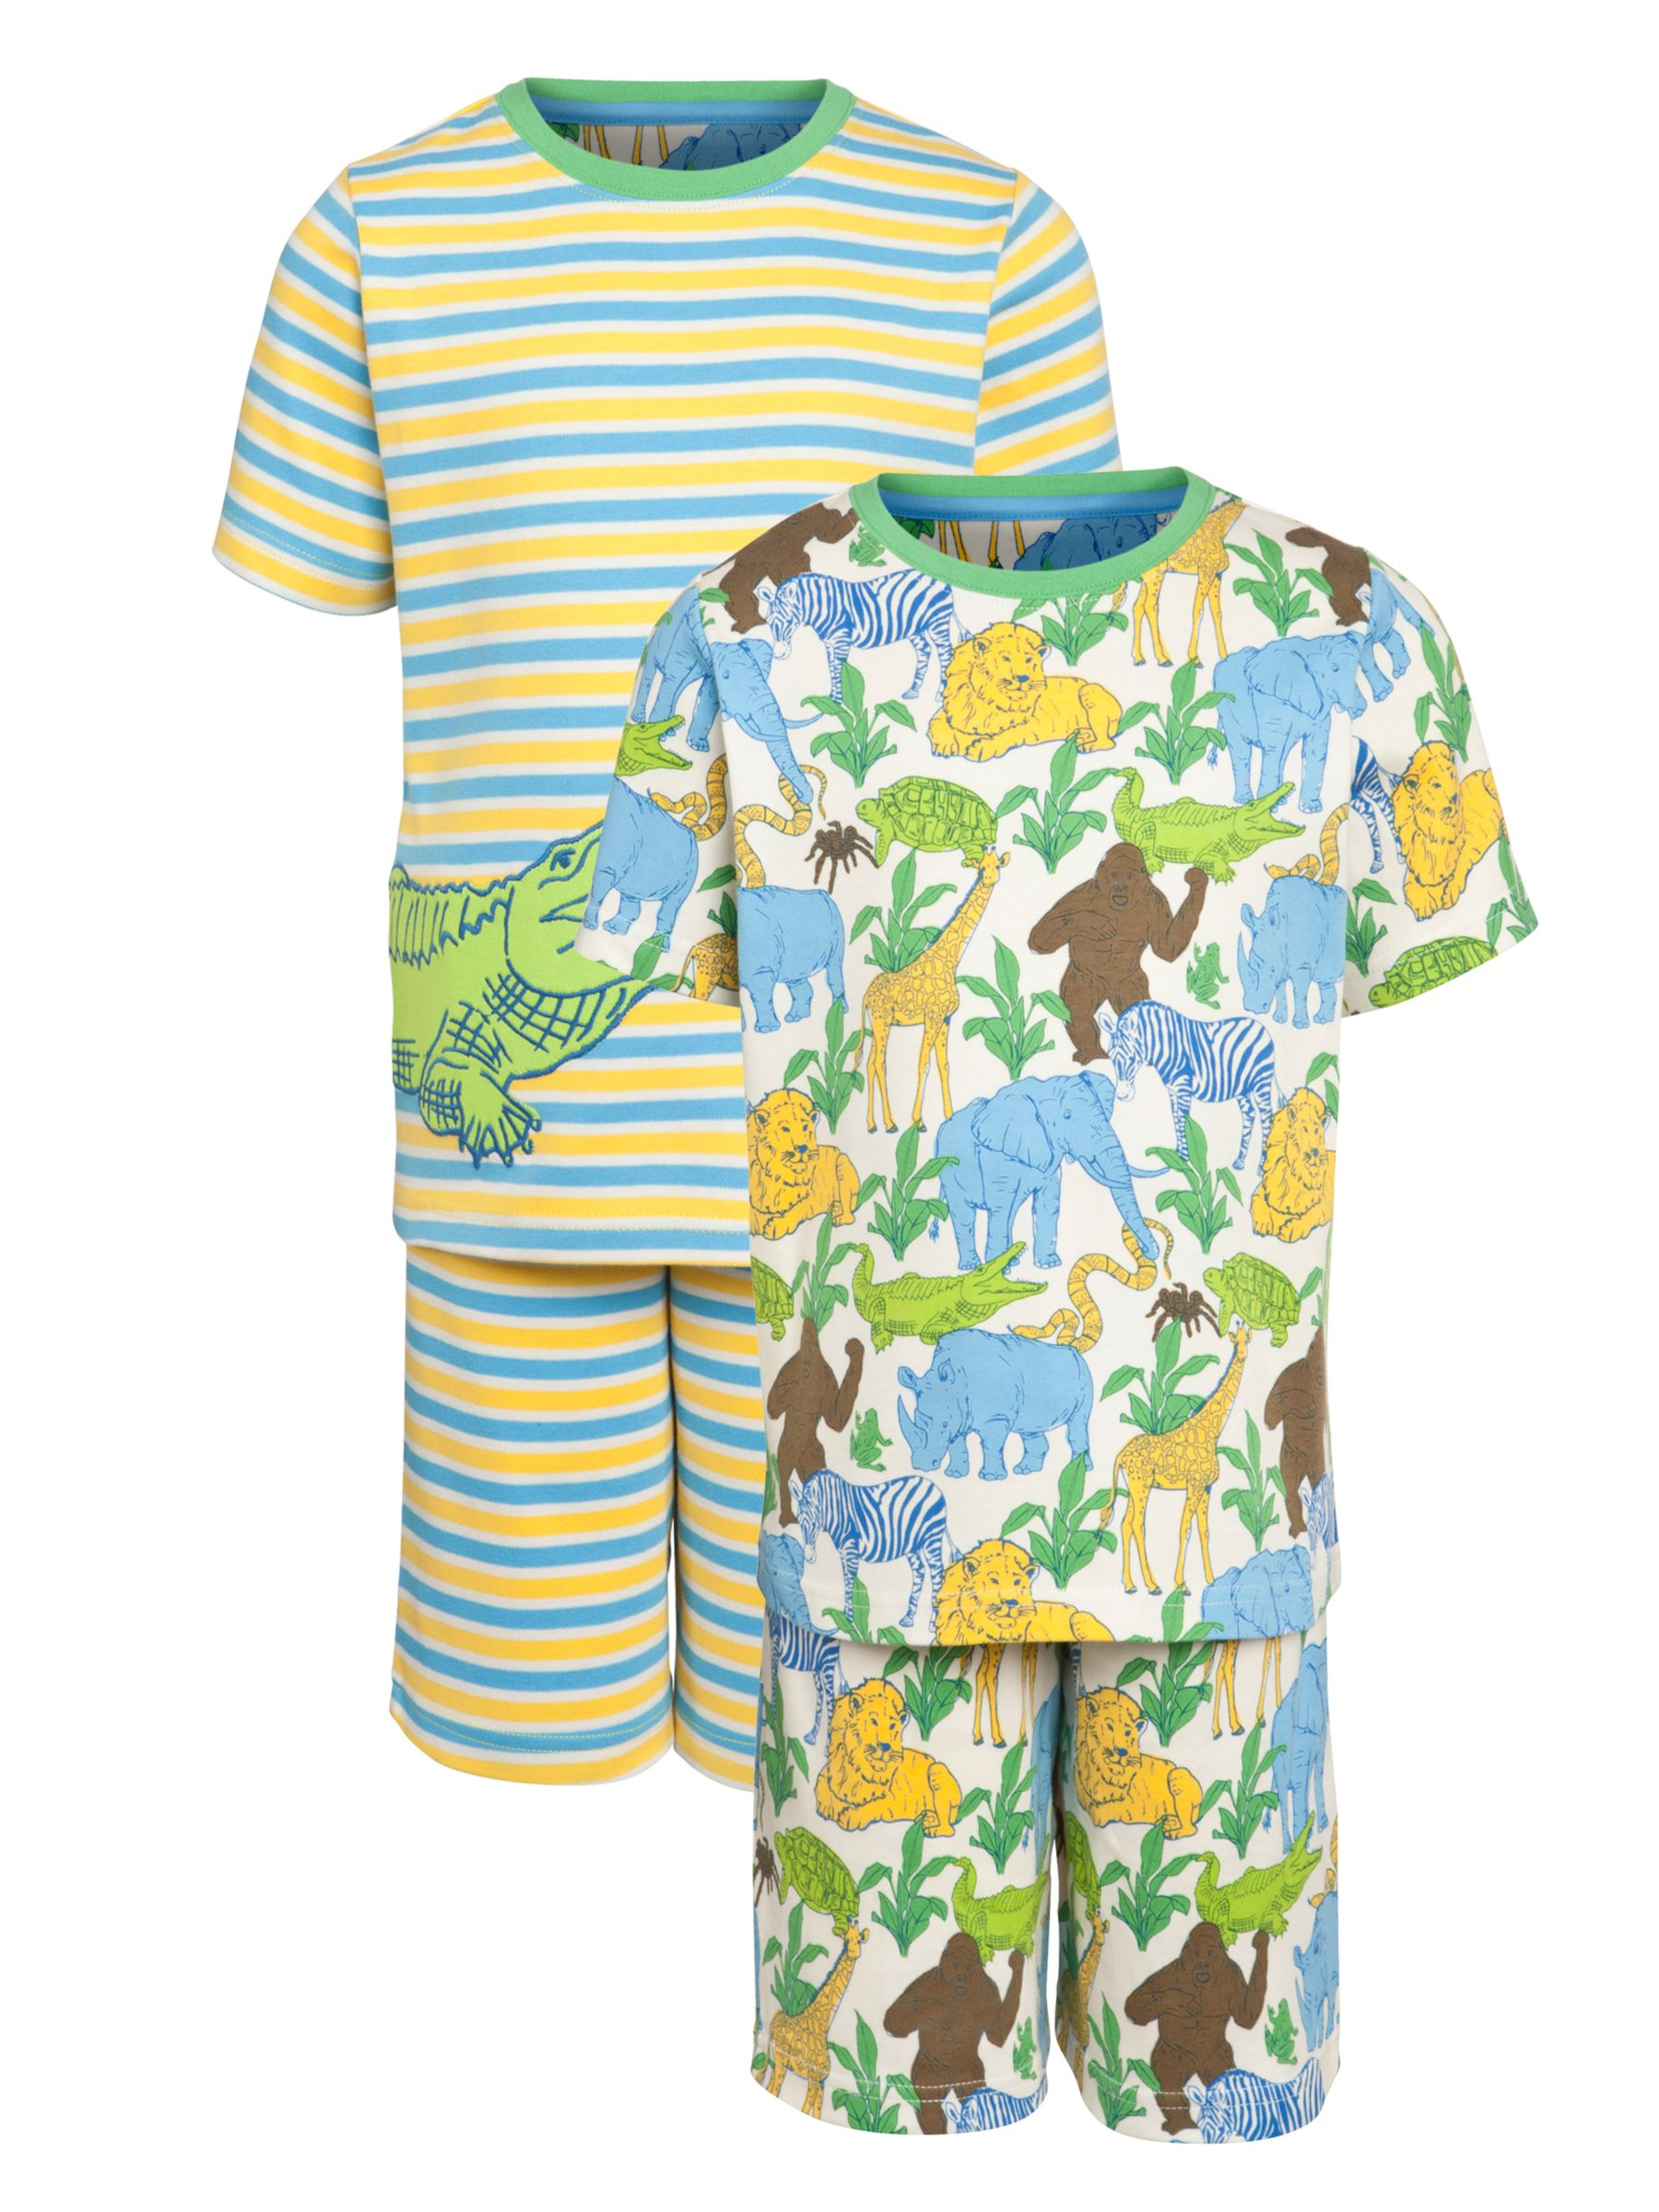 John Lewis Boy Jungle Croc Short Pyjamas, Pack of 2, White/Multi